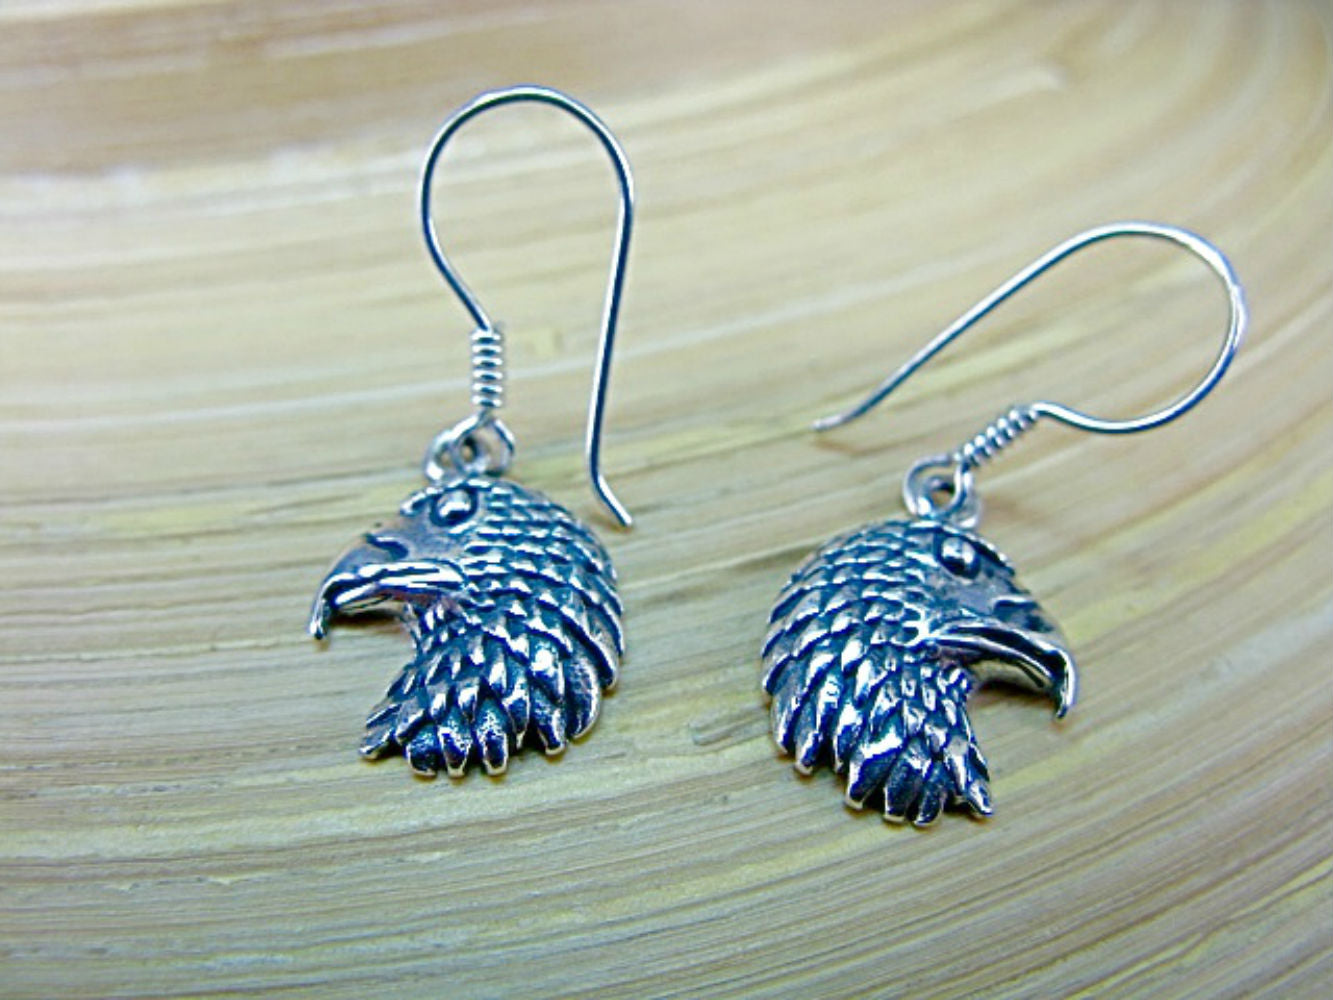 Eagle Dangle Earrings in 925 Sterling Silver